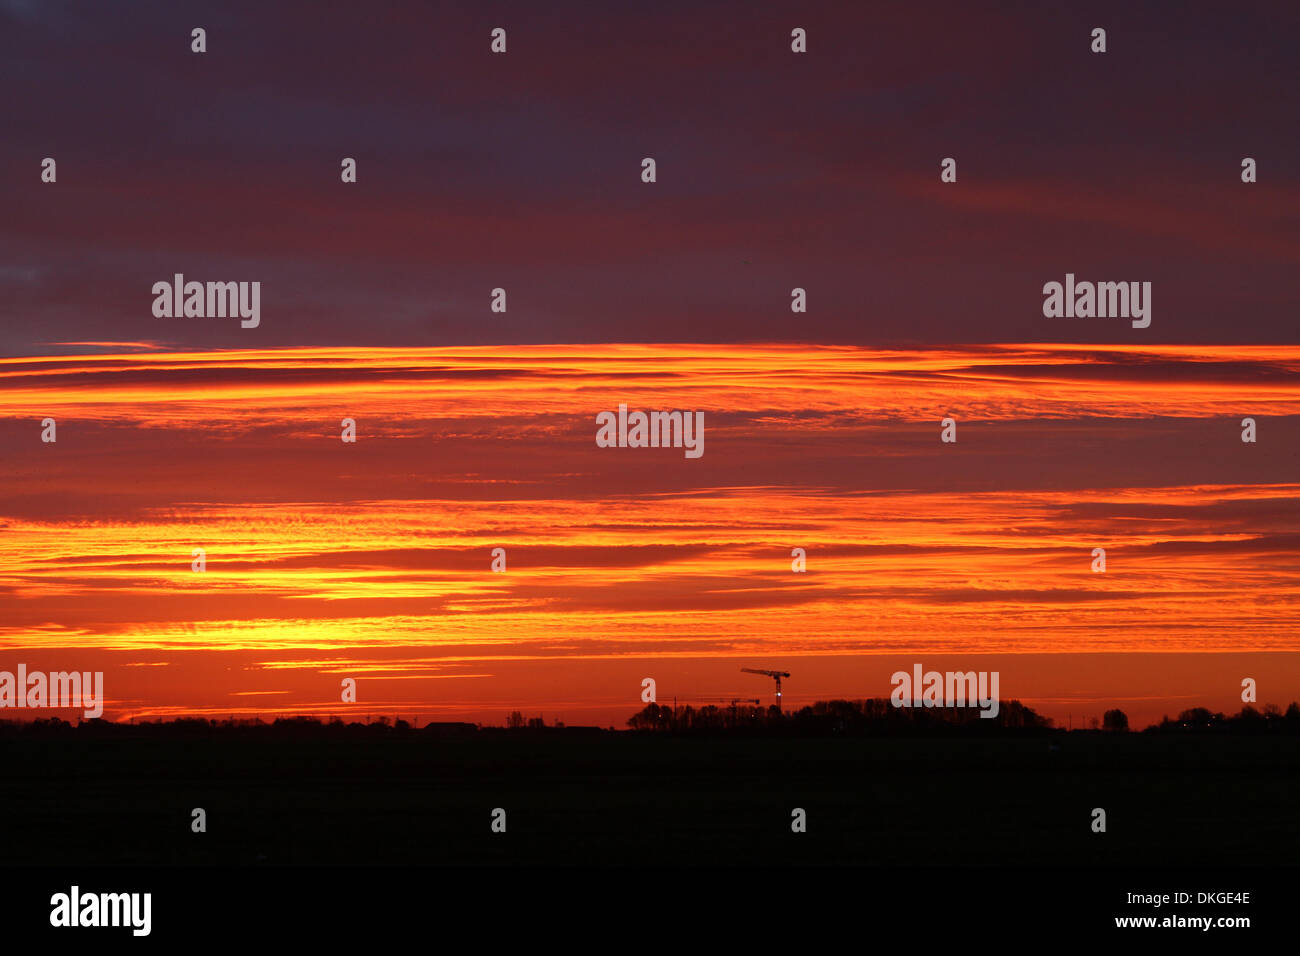 Peterborough, UK. 05th Dec, 2013. Red sky in the morning is said to be shepherds warning, as the sky looks like it's on fire, just before sunrise in Peterborough, Cambridgeshire. Storms are set to brace the eastern side of the country today with high winds and abnormally high spring tides. Credit:  Paul Marriott/Alamy Live News - Stock Image